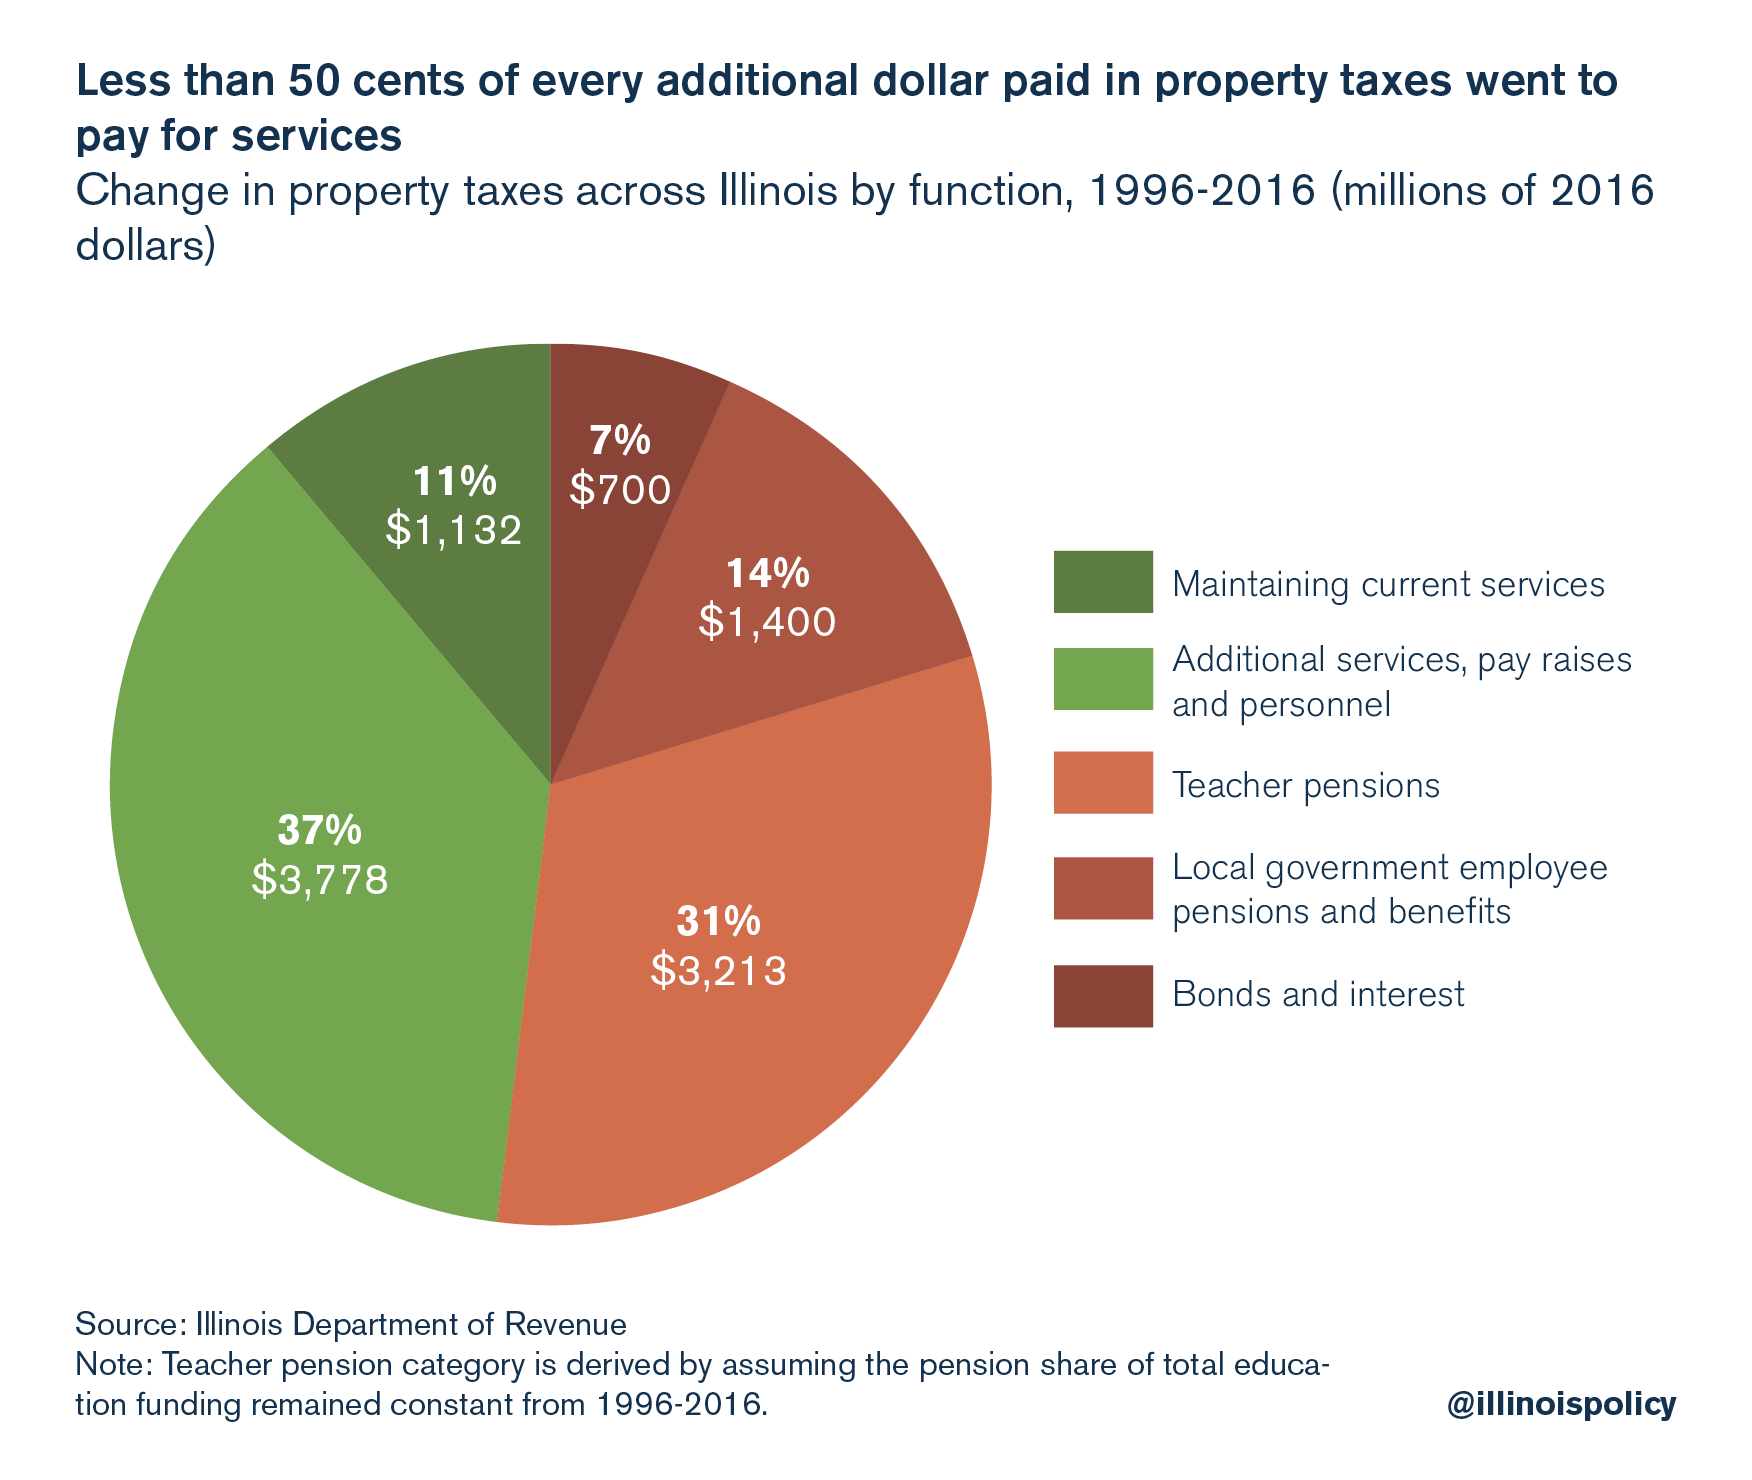 Less than 50 cents of every additional dollar paid in property taxes went to pay for services